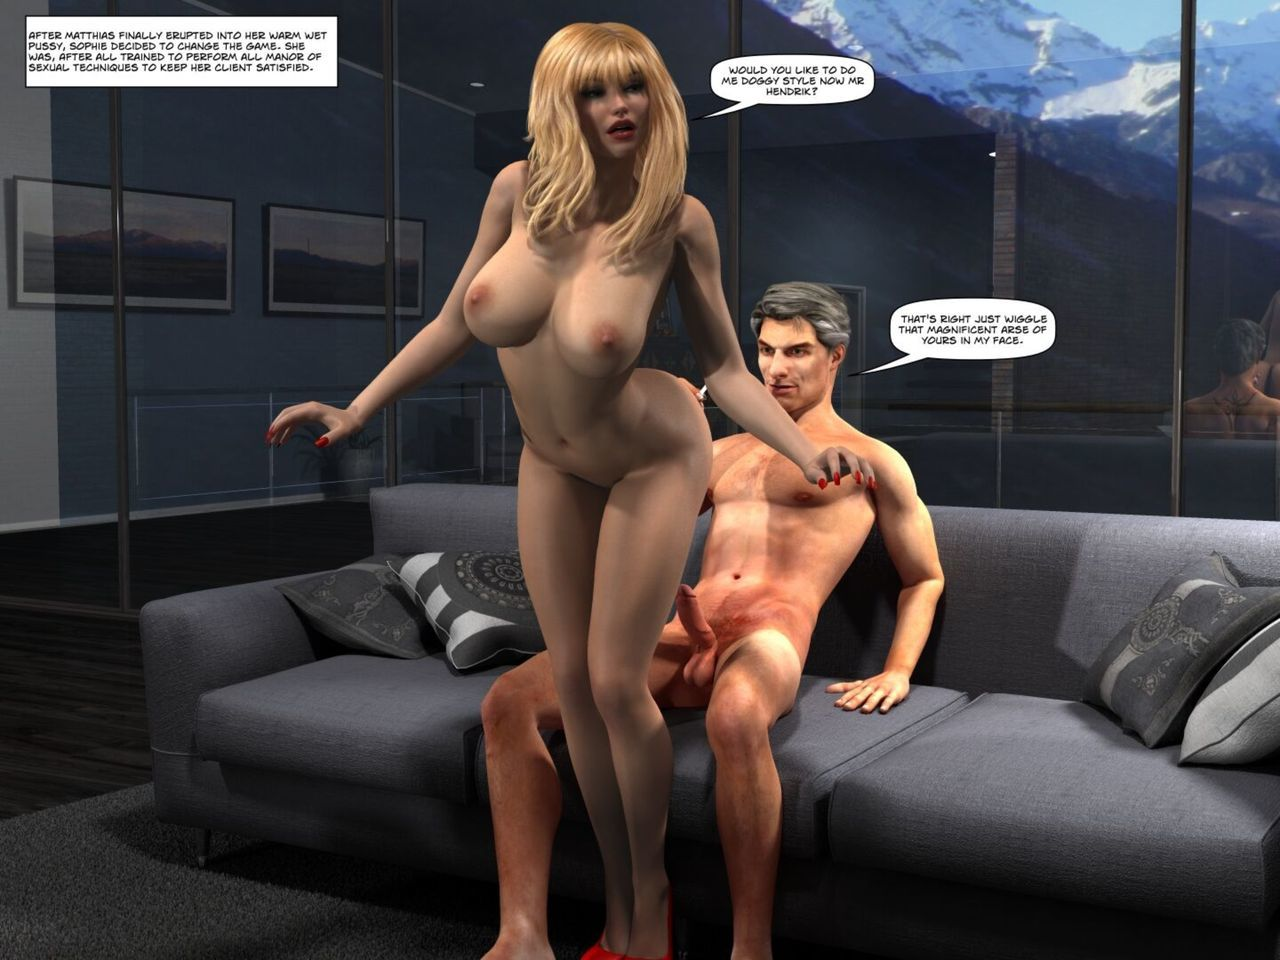 [Telsis] The Sex Toy